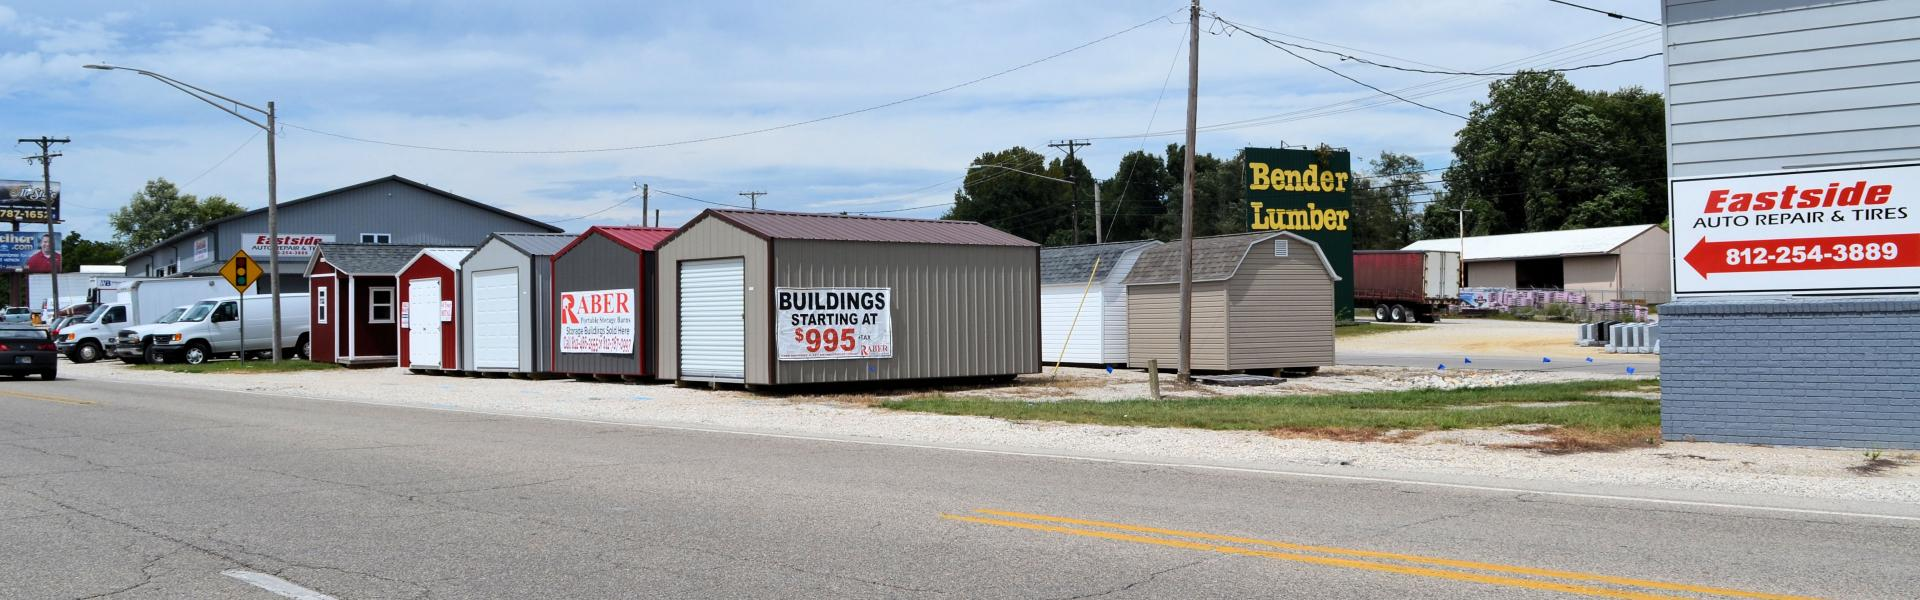 The finest storage sheds in Washington Indiana